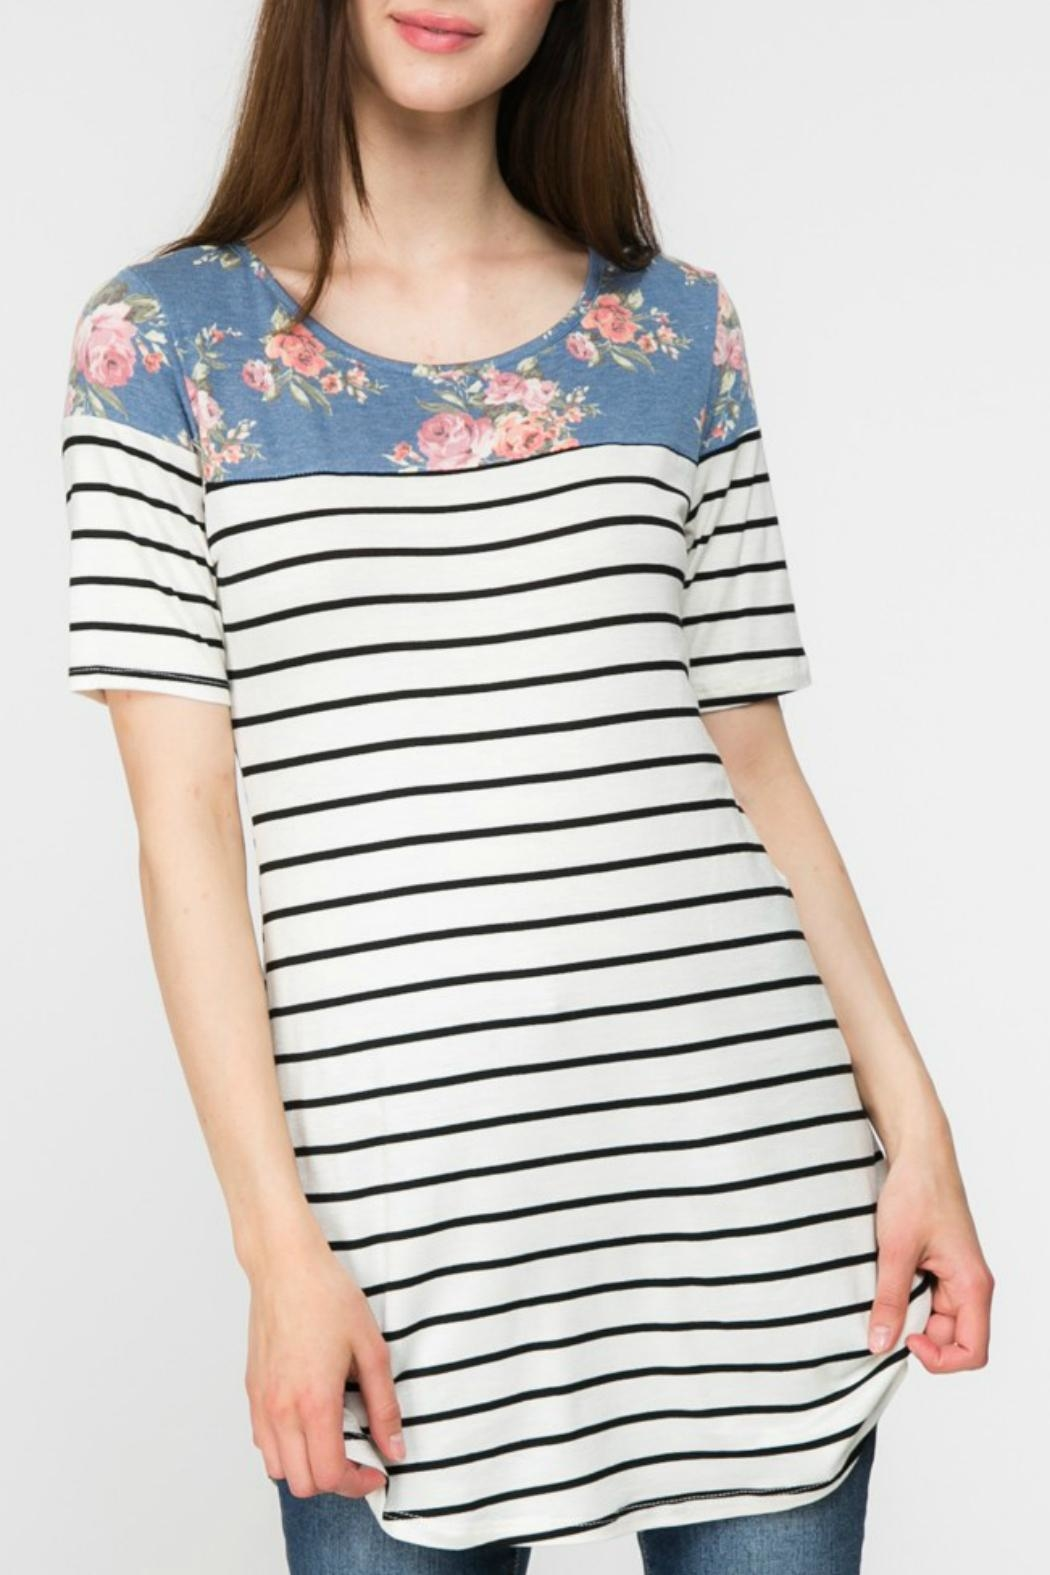 Adora Flowers-And-Stripes Long Tee - Back Cropped Image